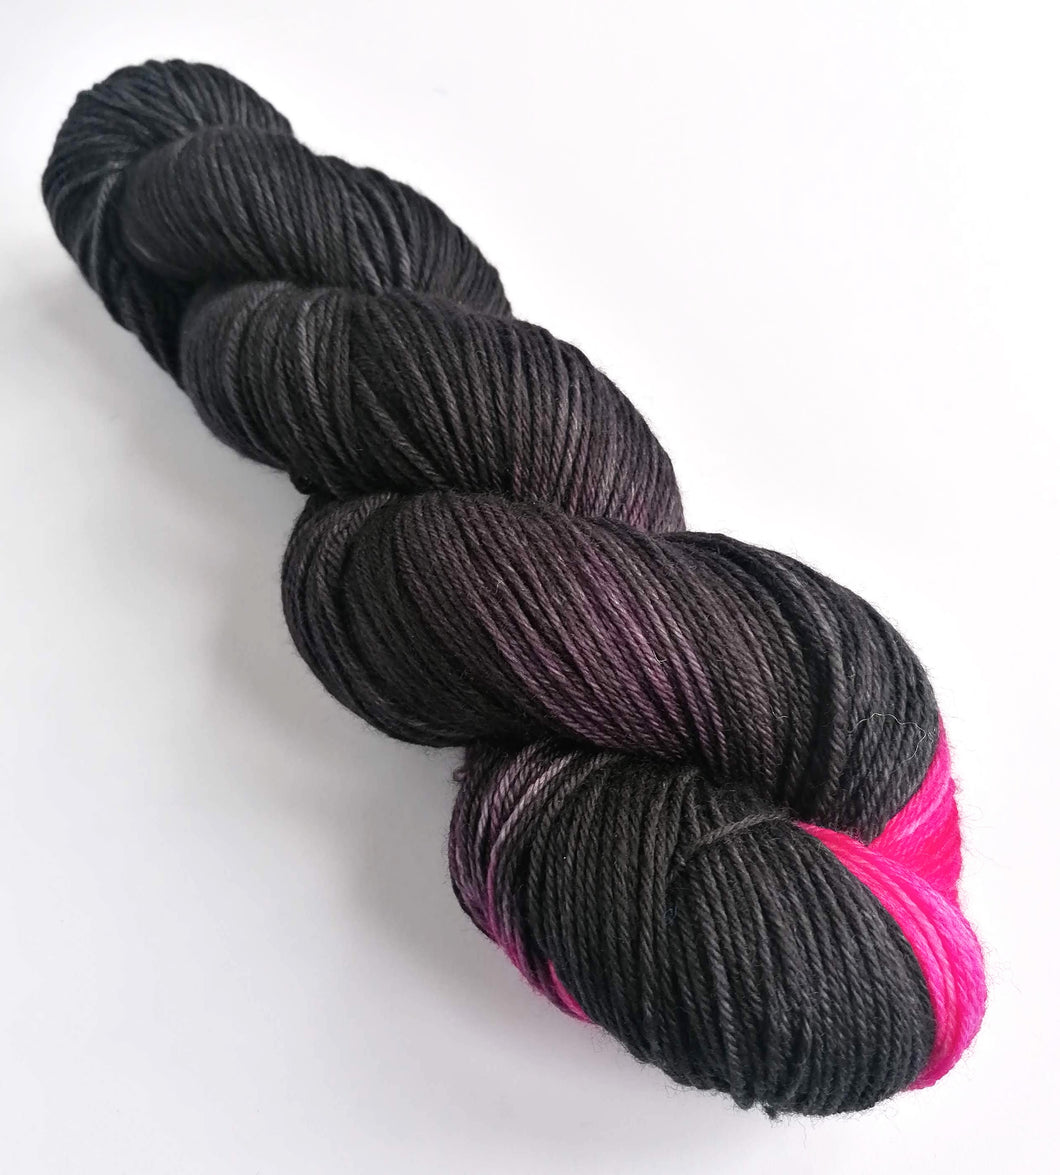 Black Like My Heart on superwash merino/cashmere/nylon sock yarn.